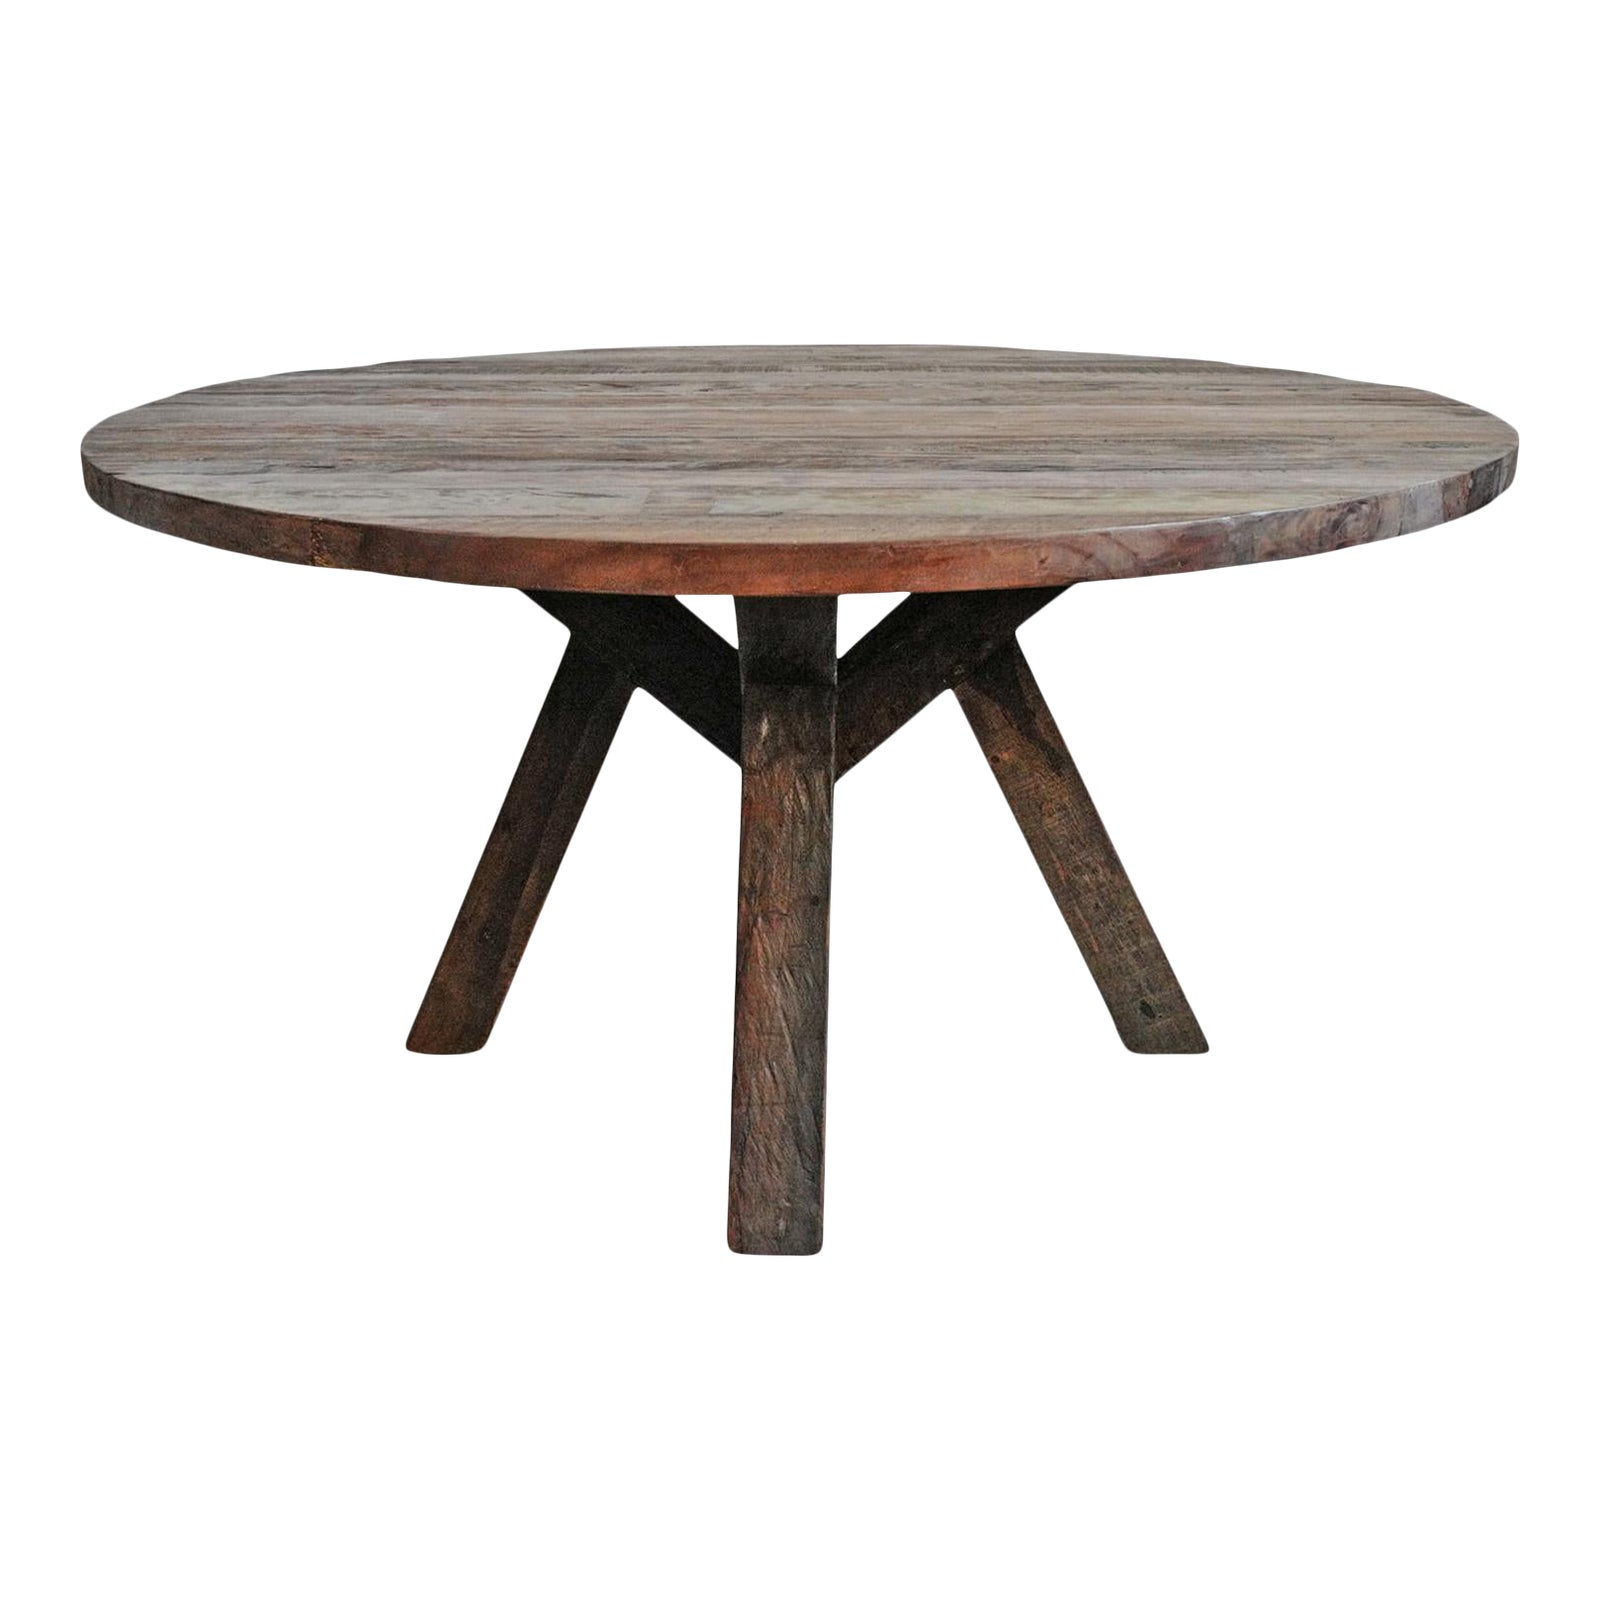 Reclaimed Wood Round Dining Table, Reclaimed Wood Round Dining Room Table